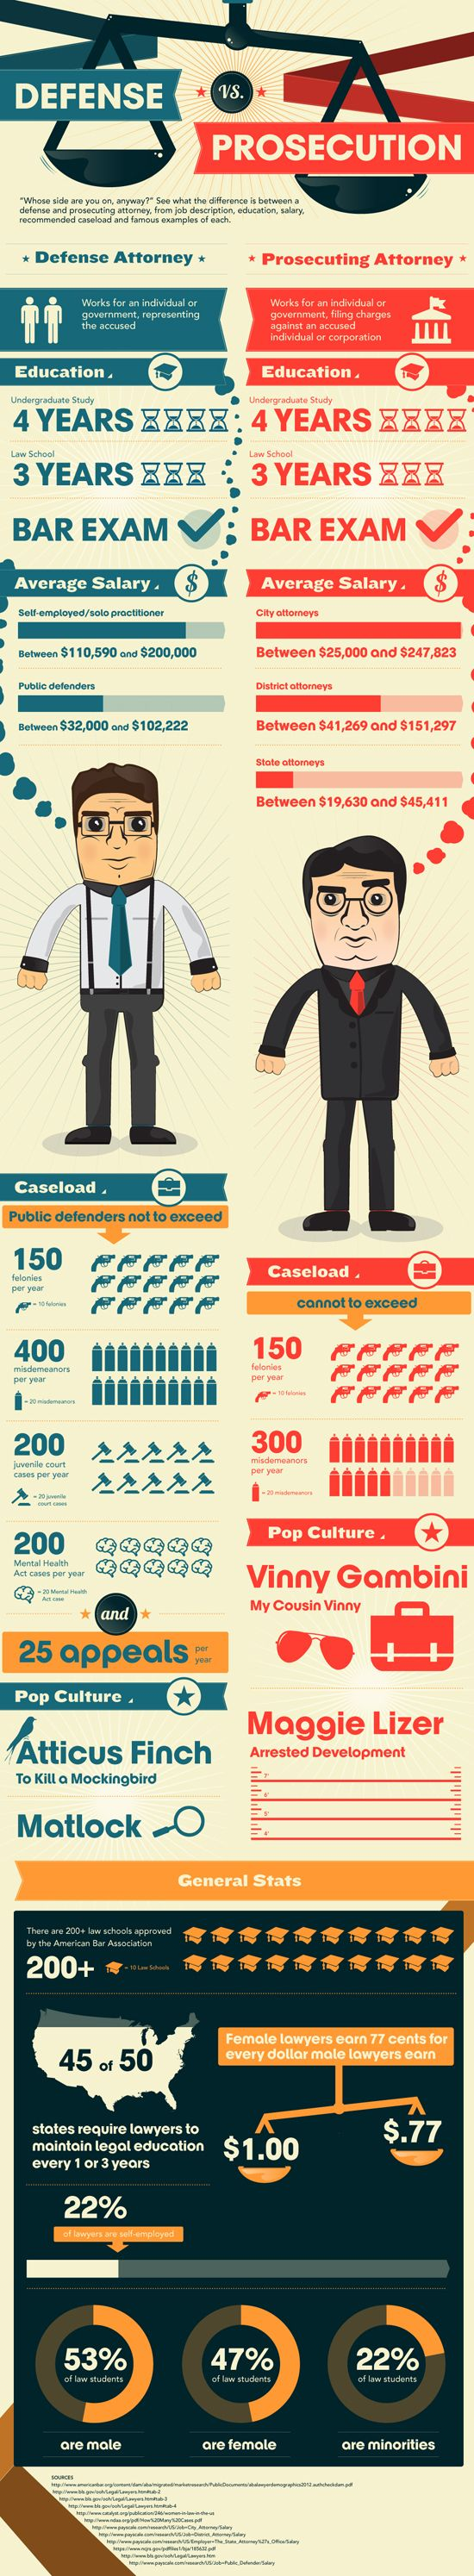 Prosecution Vs Defense Find Out How They Compare Law School